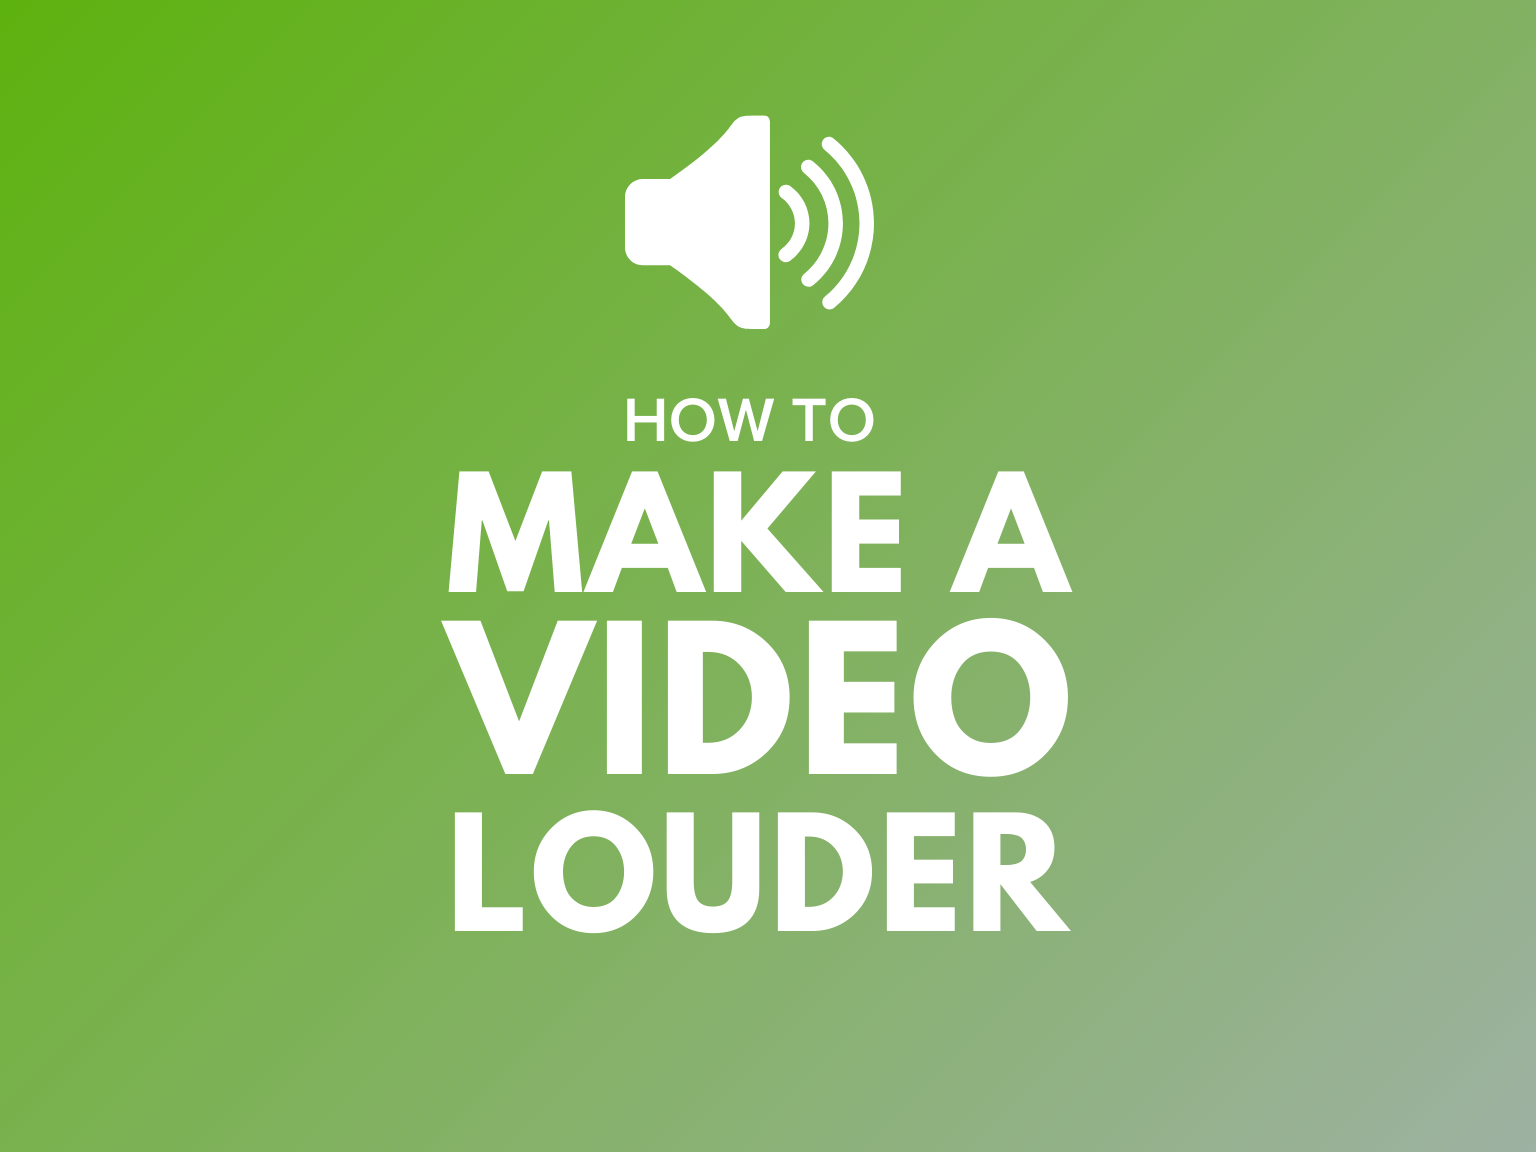 How to Make a Video Louder